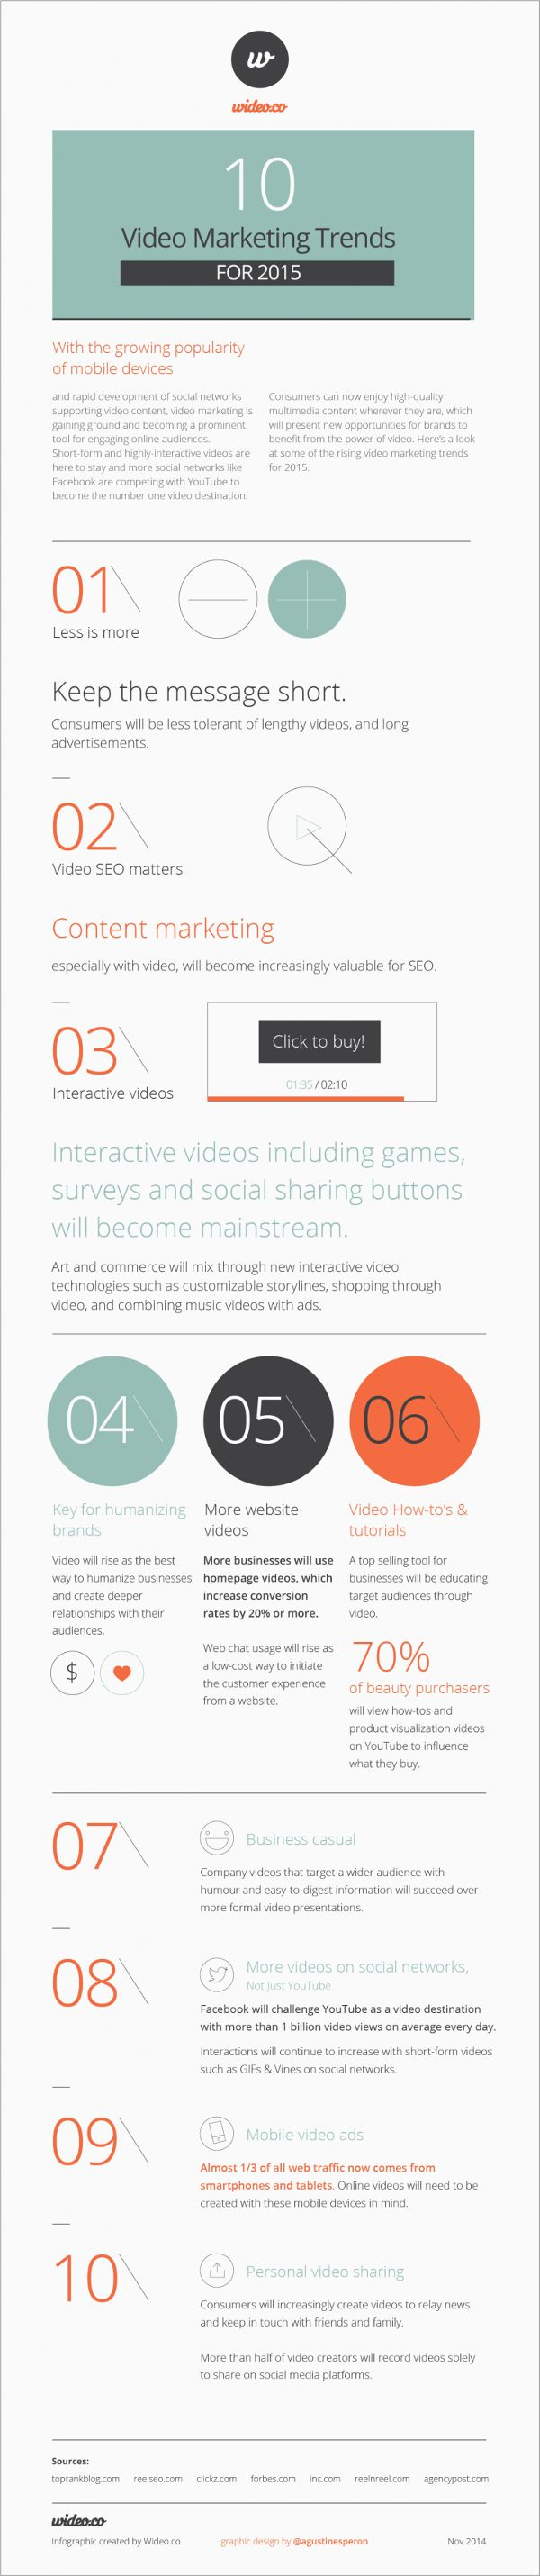 15 video marketing trends for 2015: What should marketers be doing to ensure they're up to speed with video in the coming year? This infographic has the answers. #marketing #video